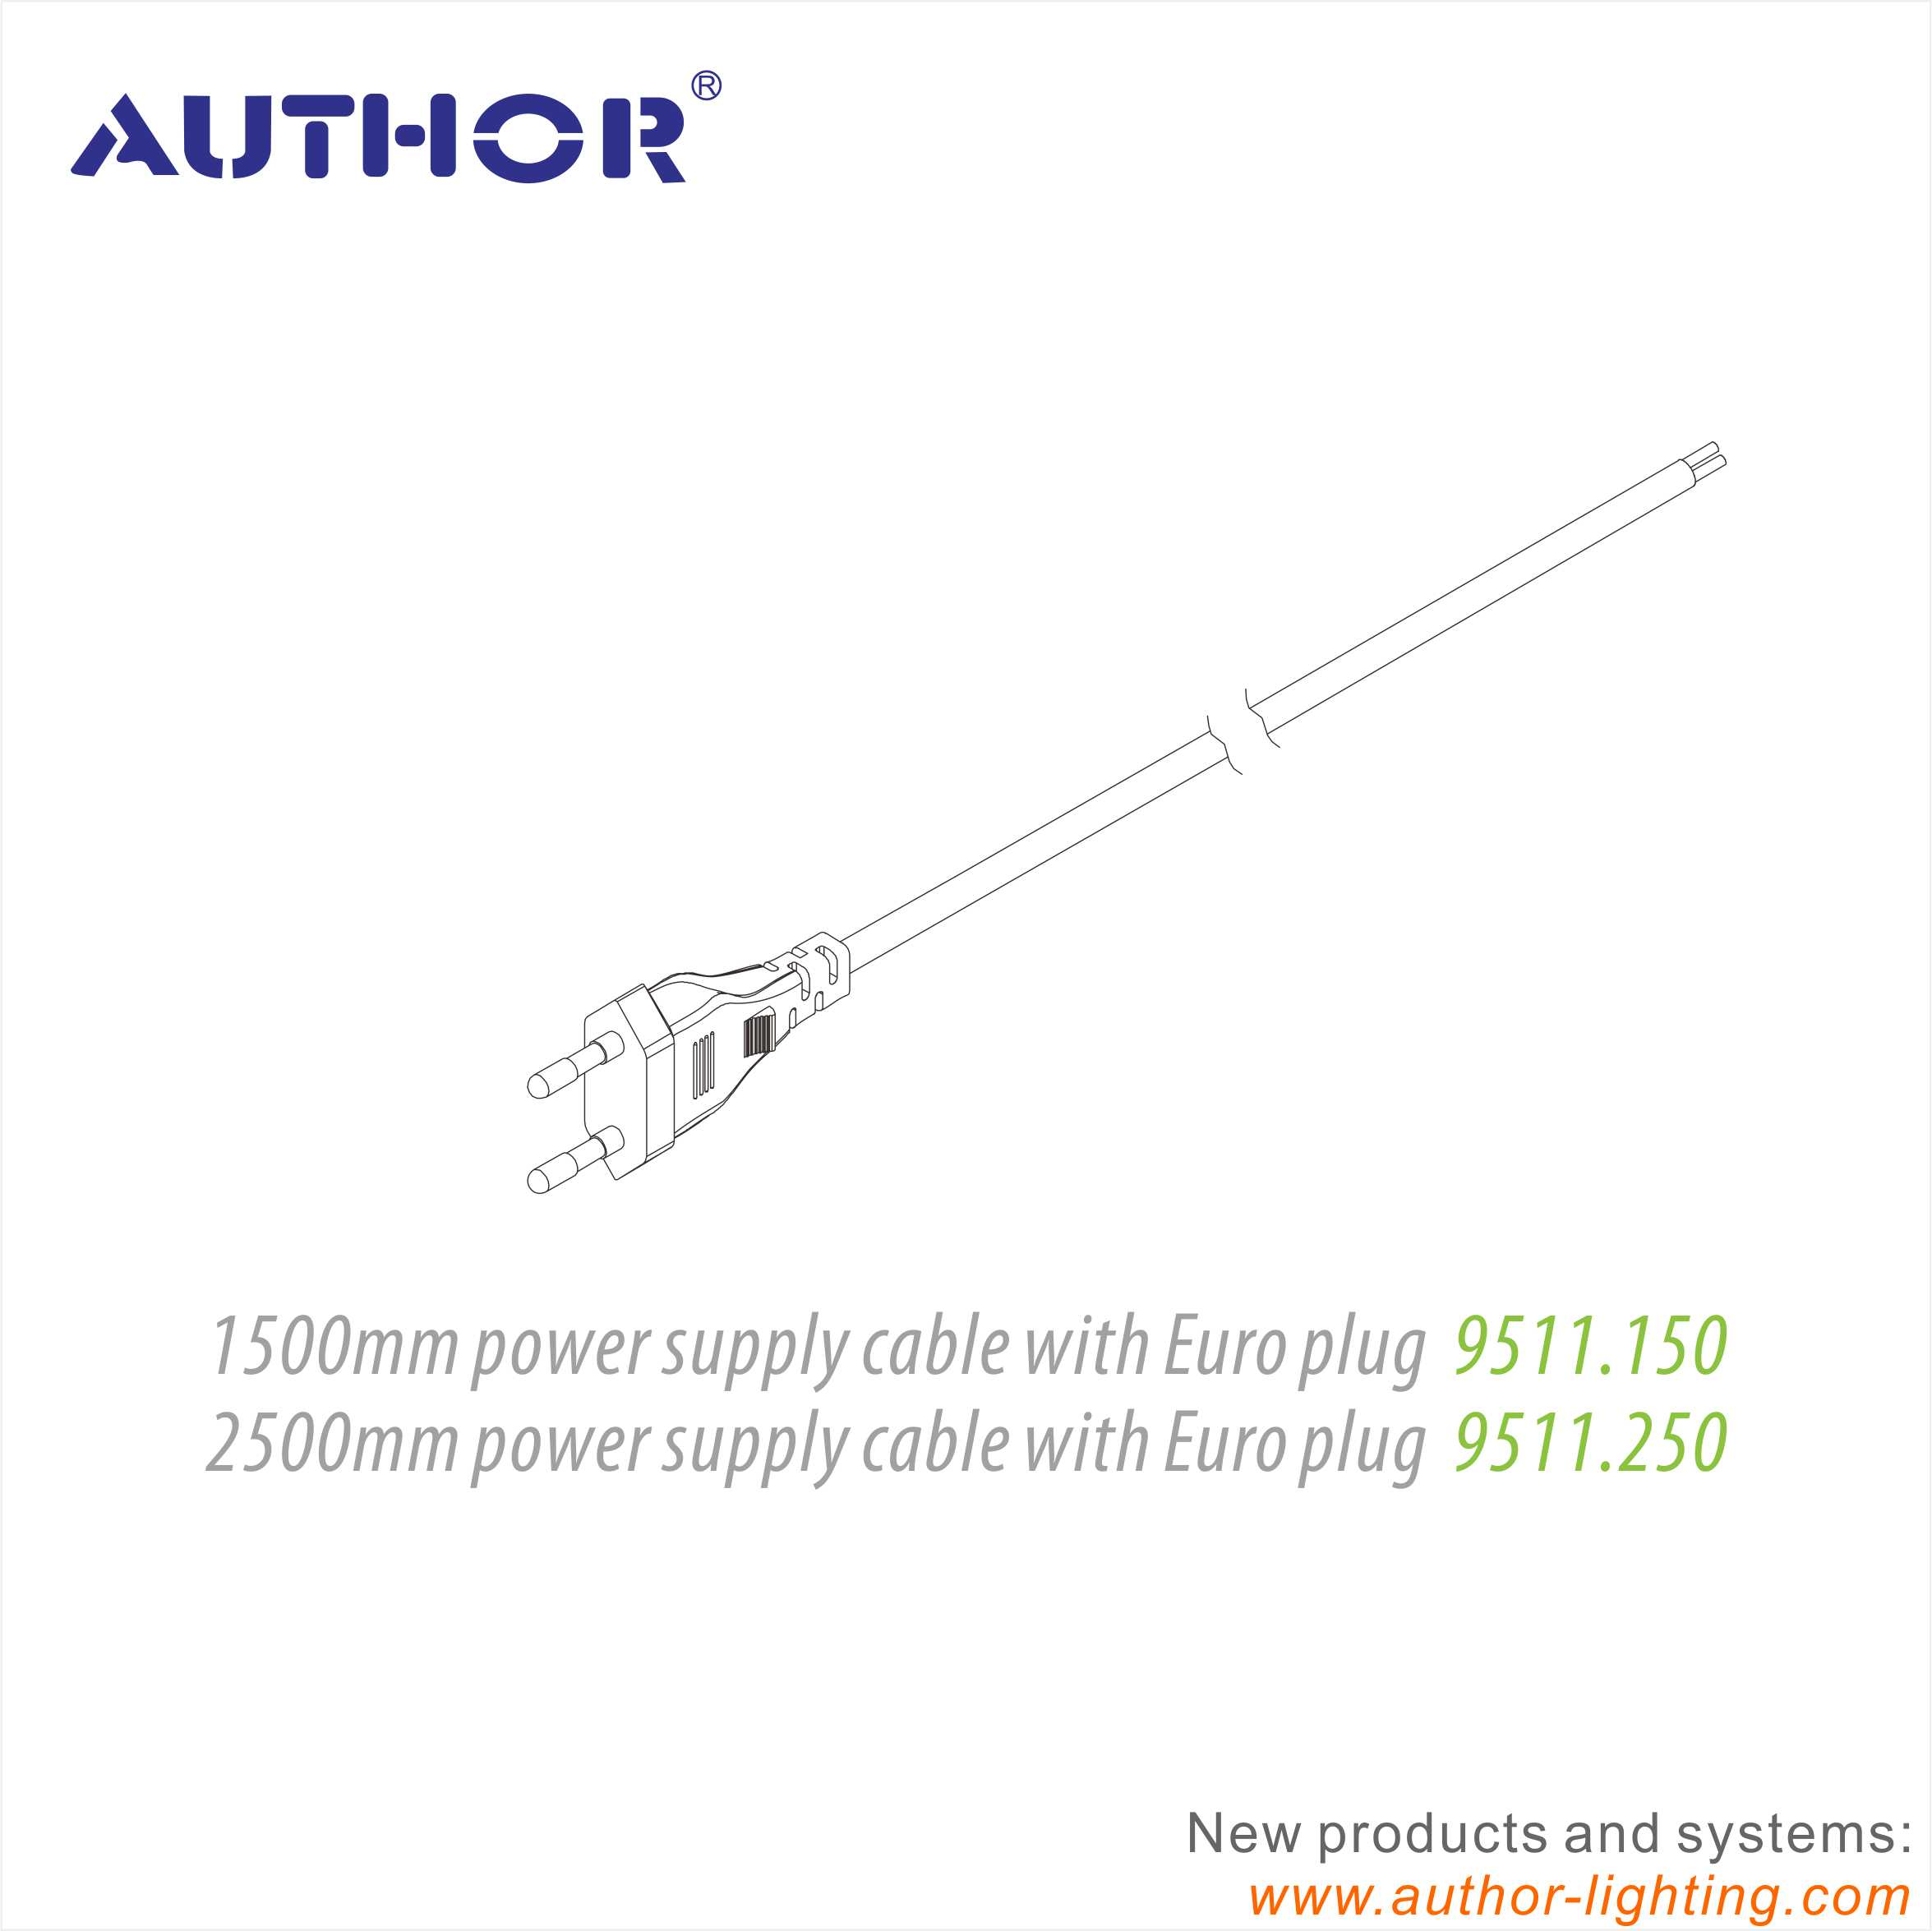 2 Prong EU Plug Power Supply Cable For Lightings 9511